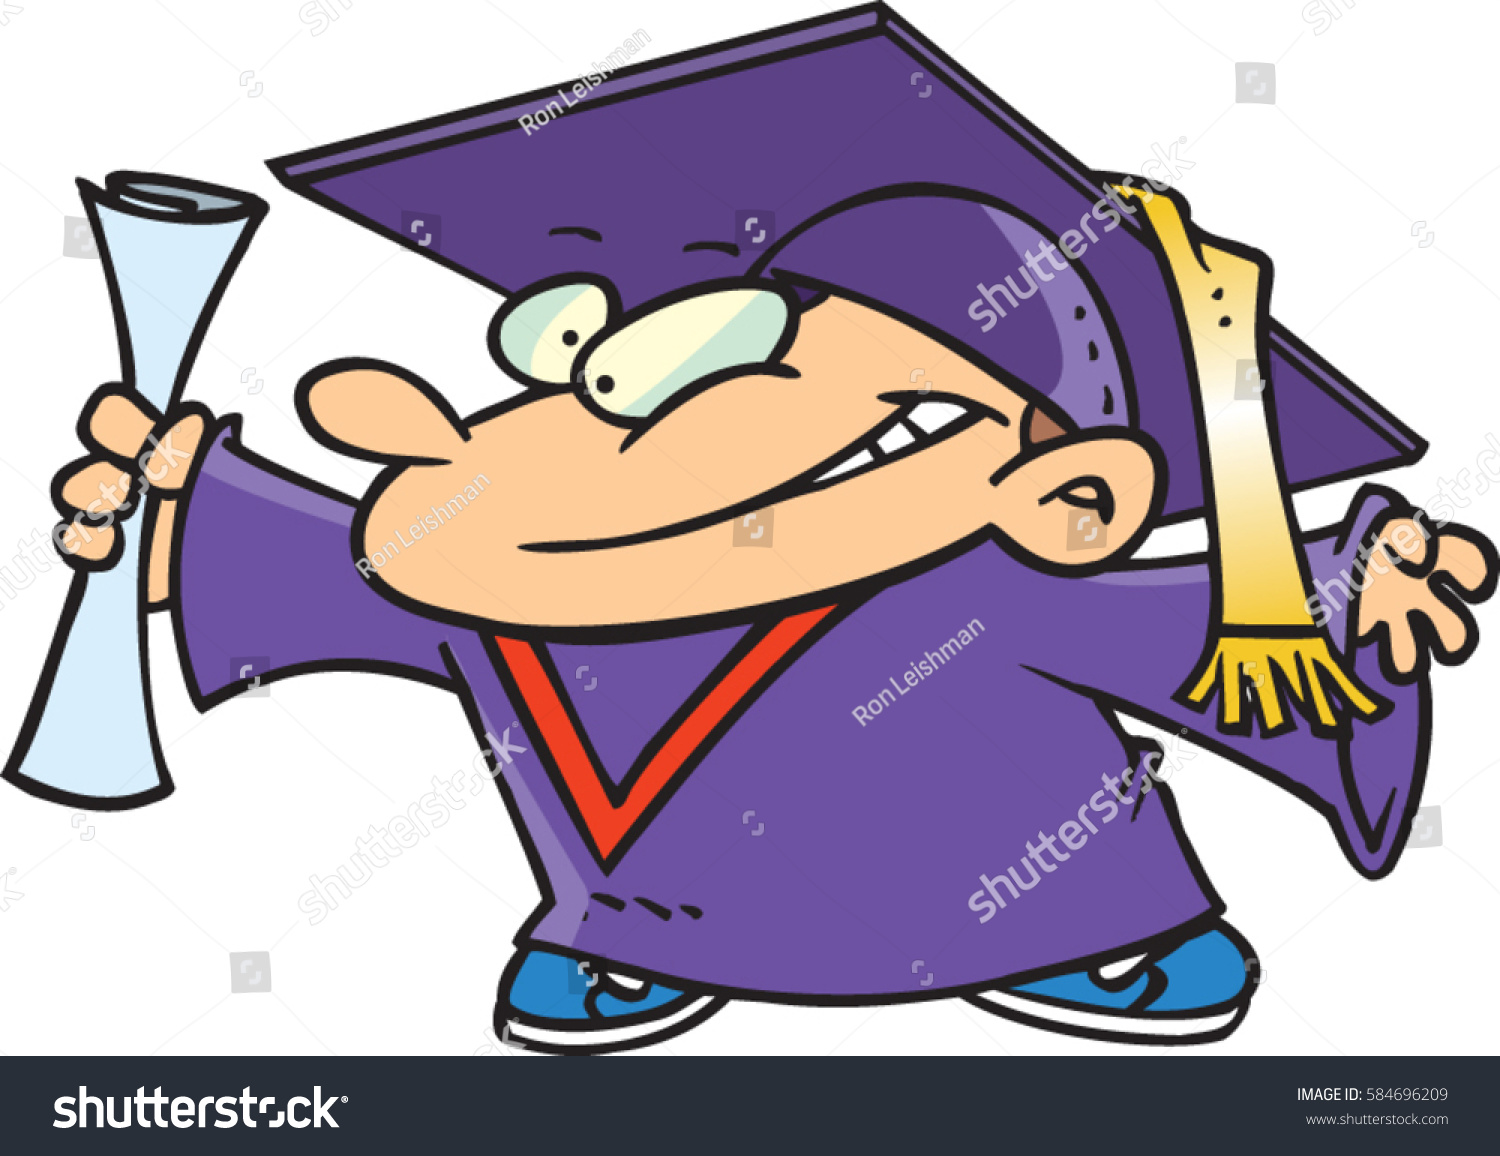 Cartoon Child Graduation Gown Stock Vector (2018) 584696209 ...